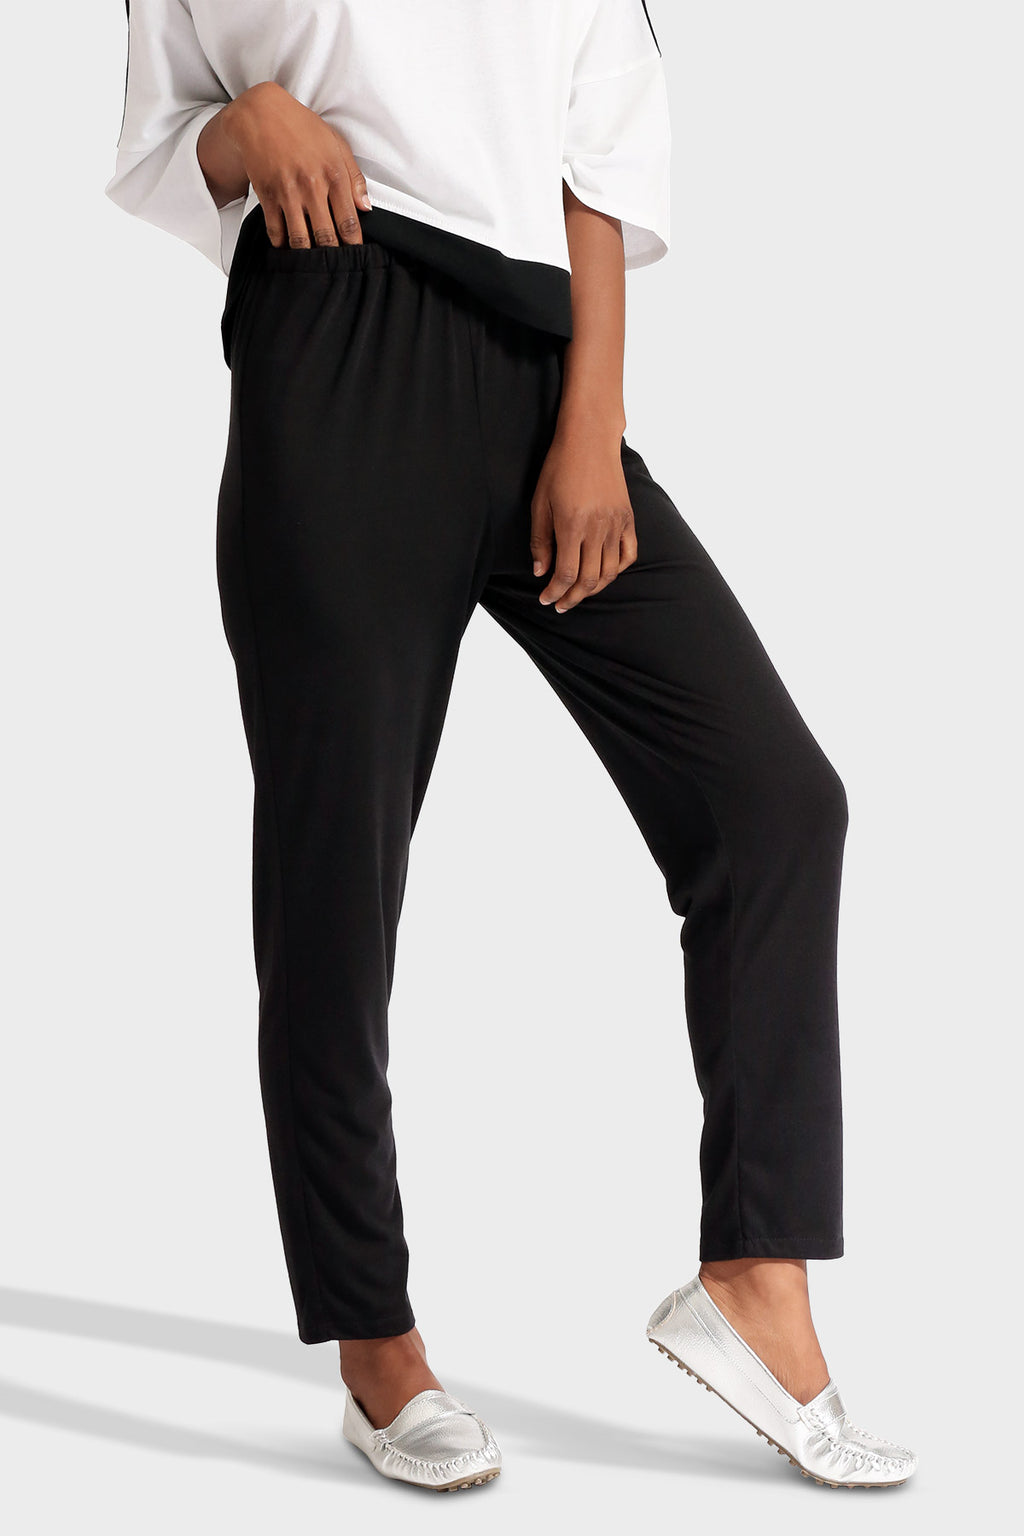 SAGE SWEATPANT - 337 BRAND Women's Sustainable Clothing